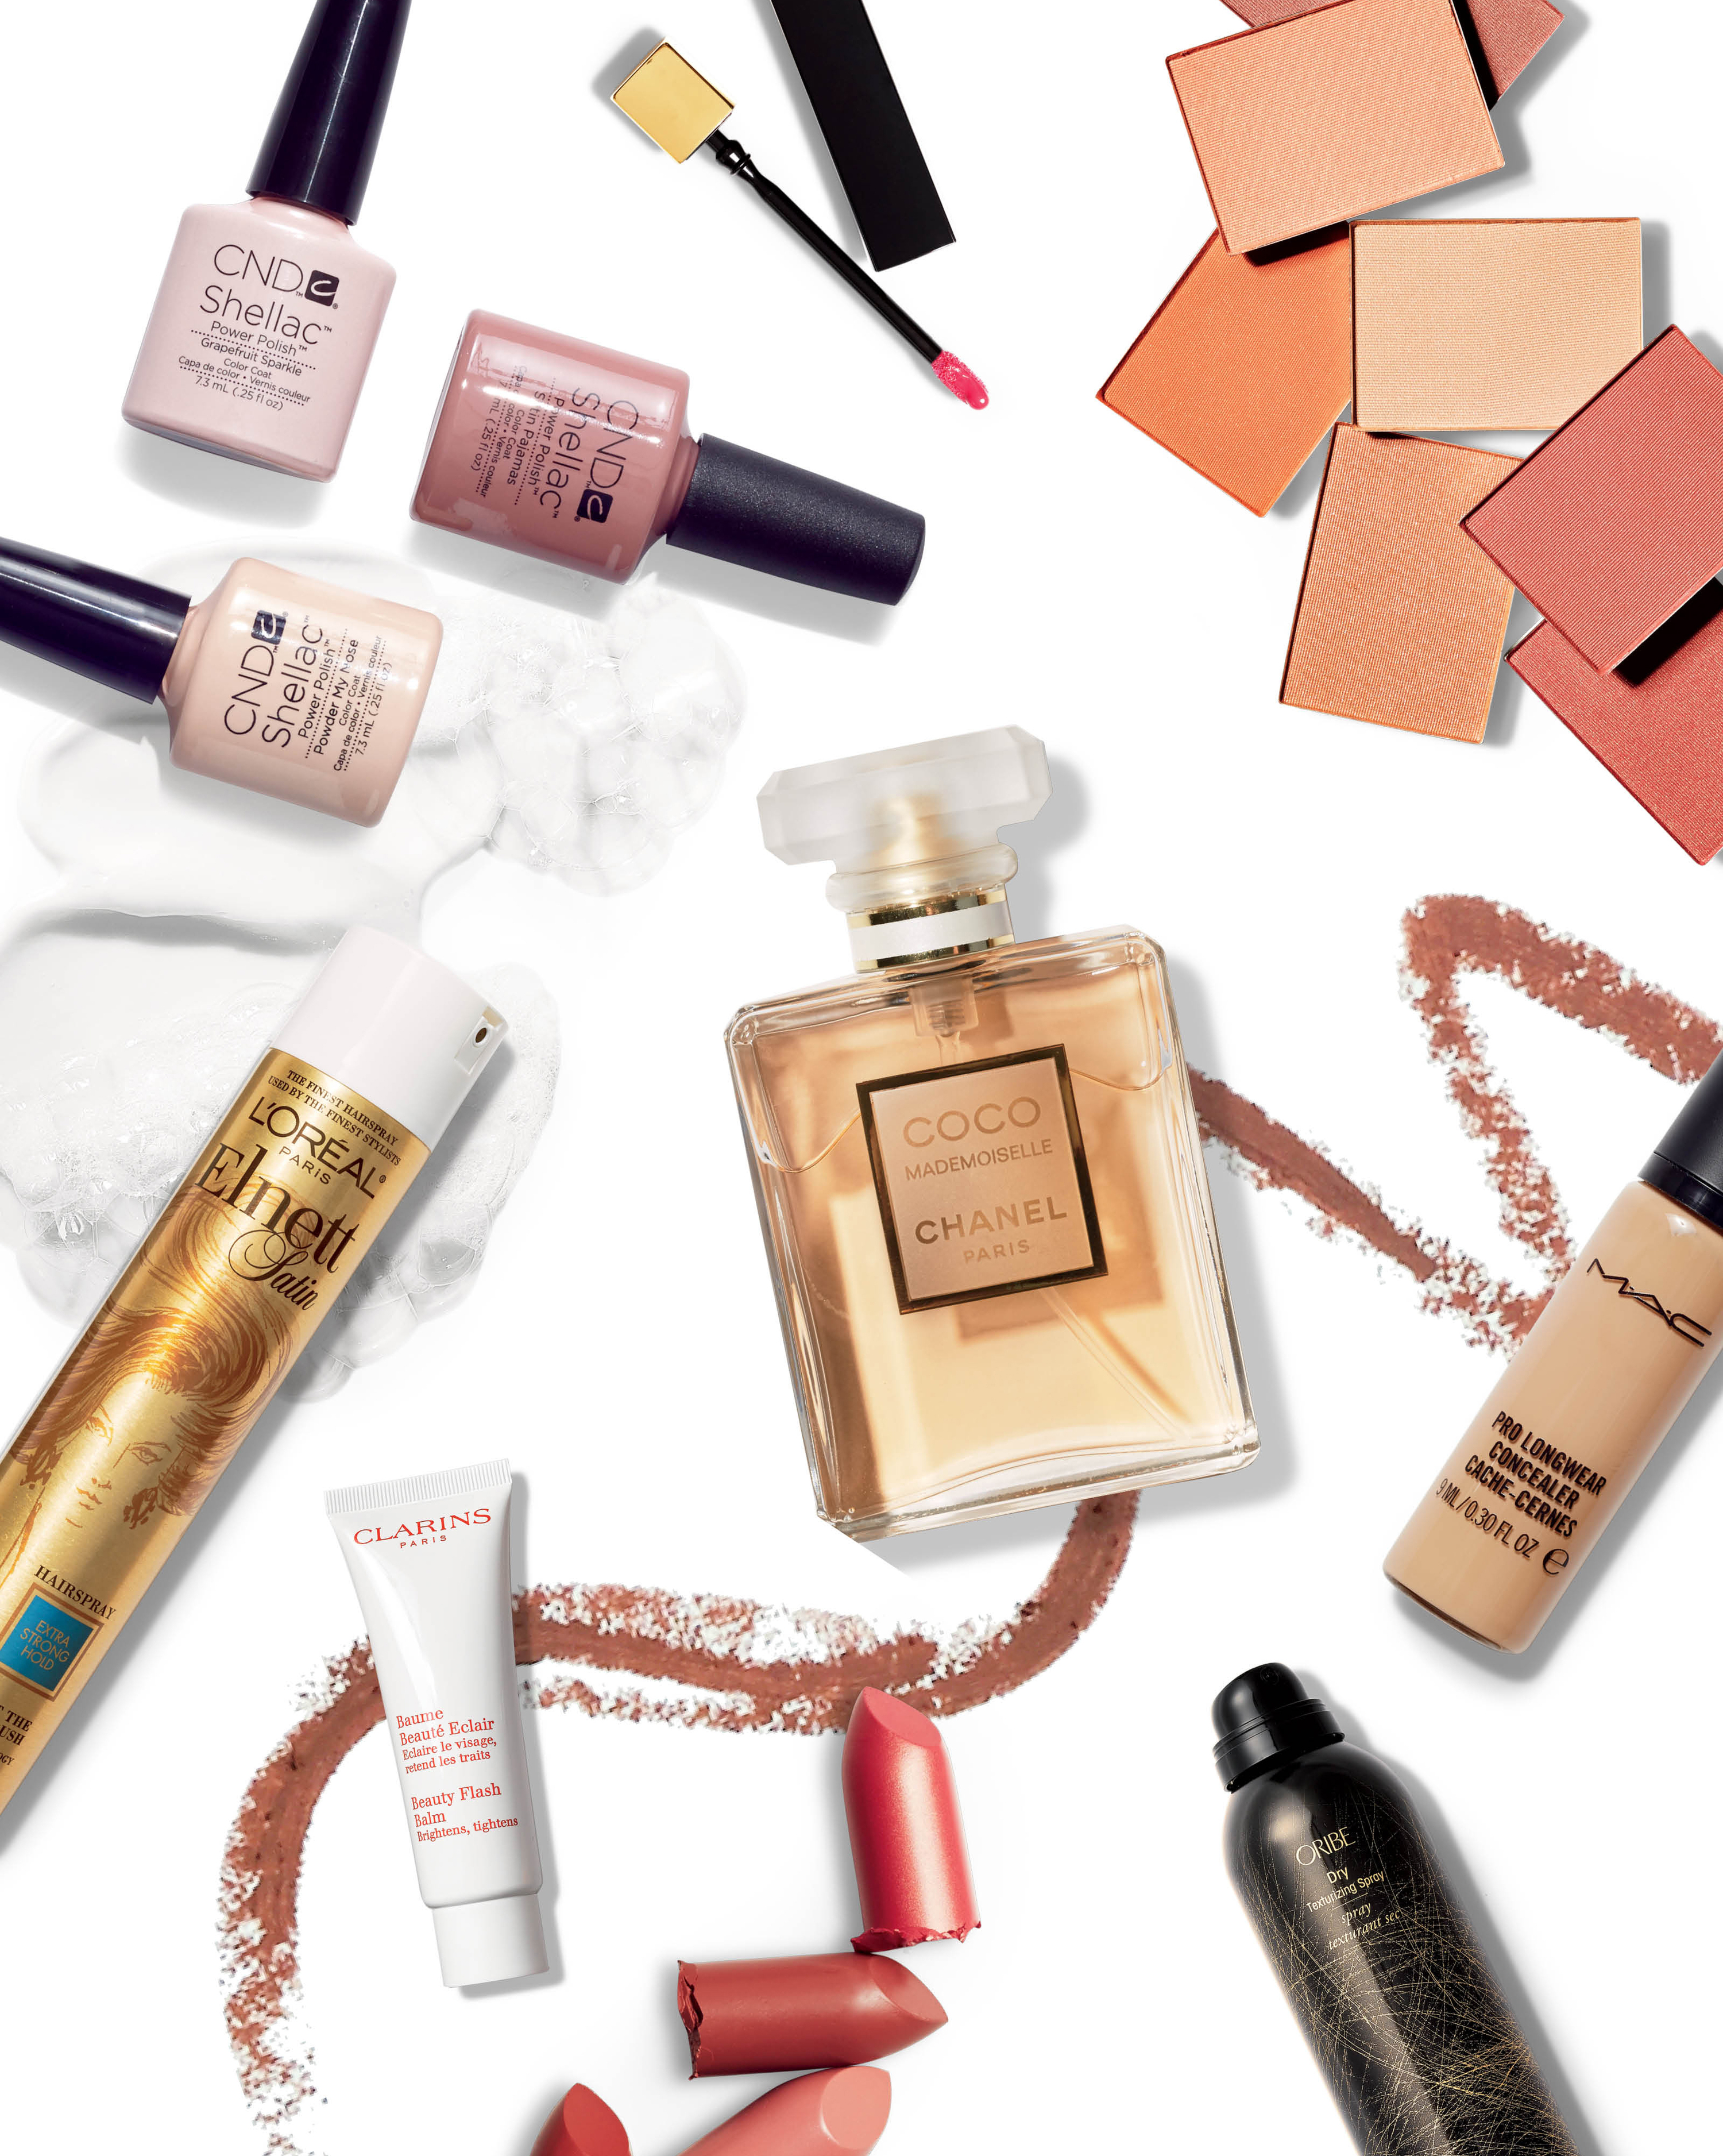 big-day-beauty-product-collage-2015-0315.jpg